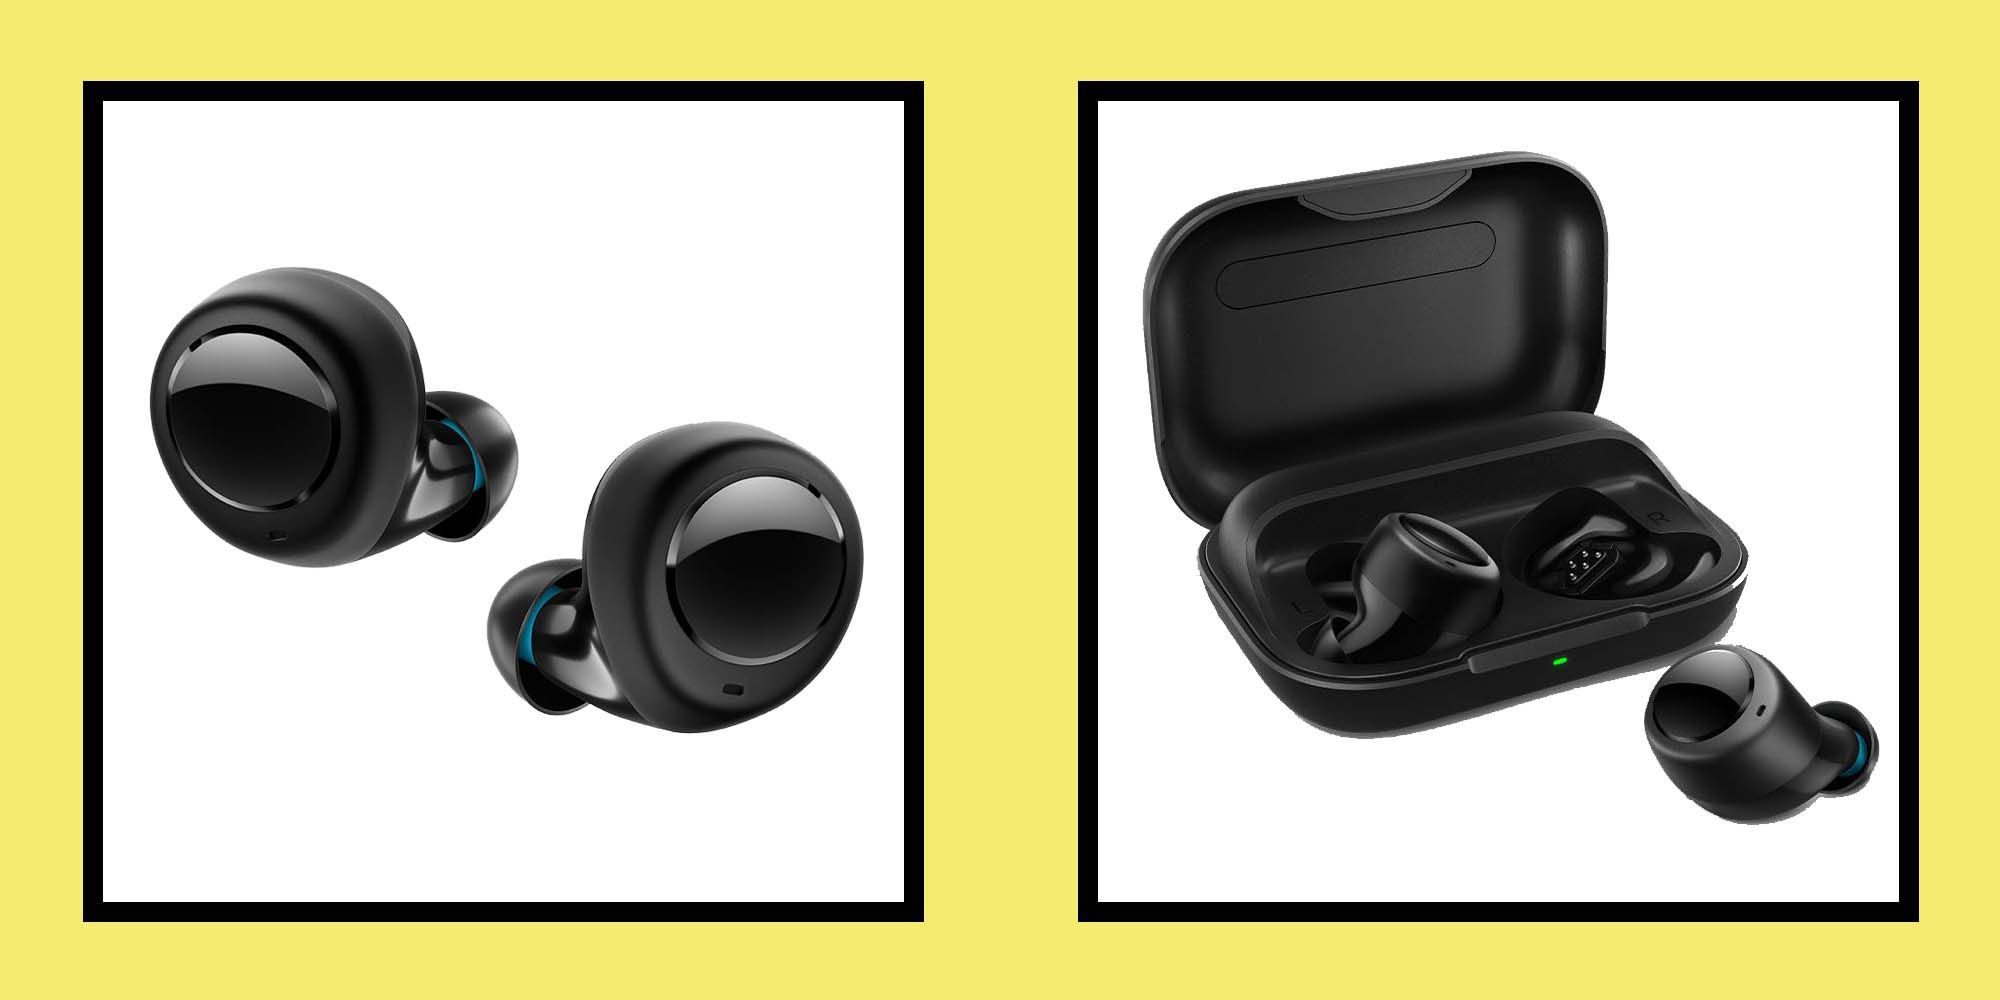 Sorry, Airpods: Amazon's Echo Buds are the perfect headphones for exercise